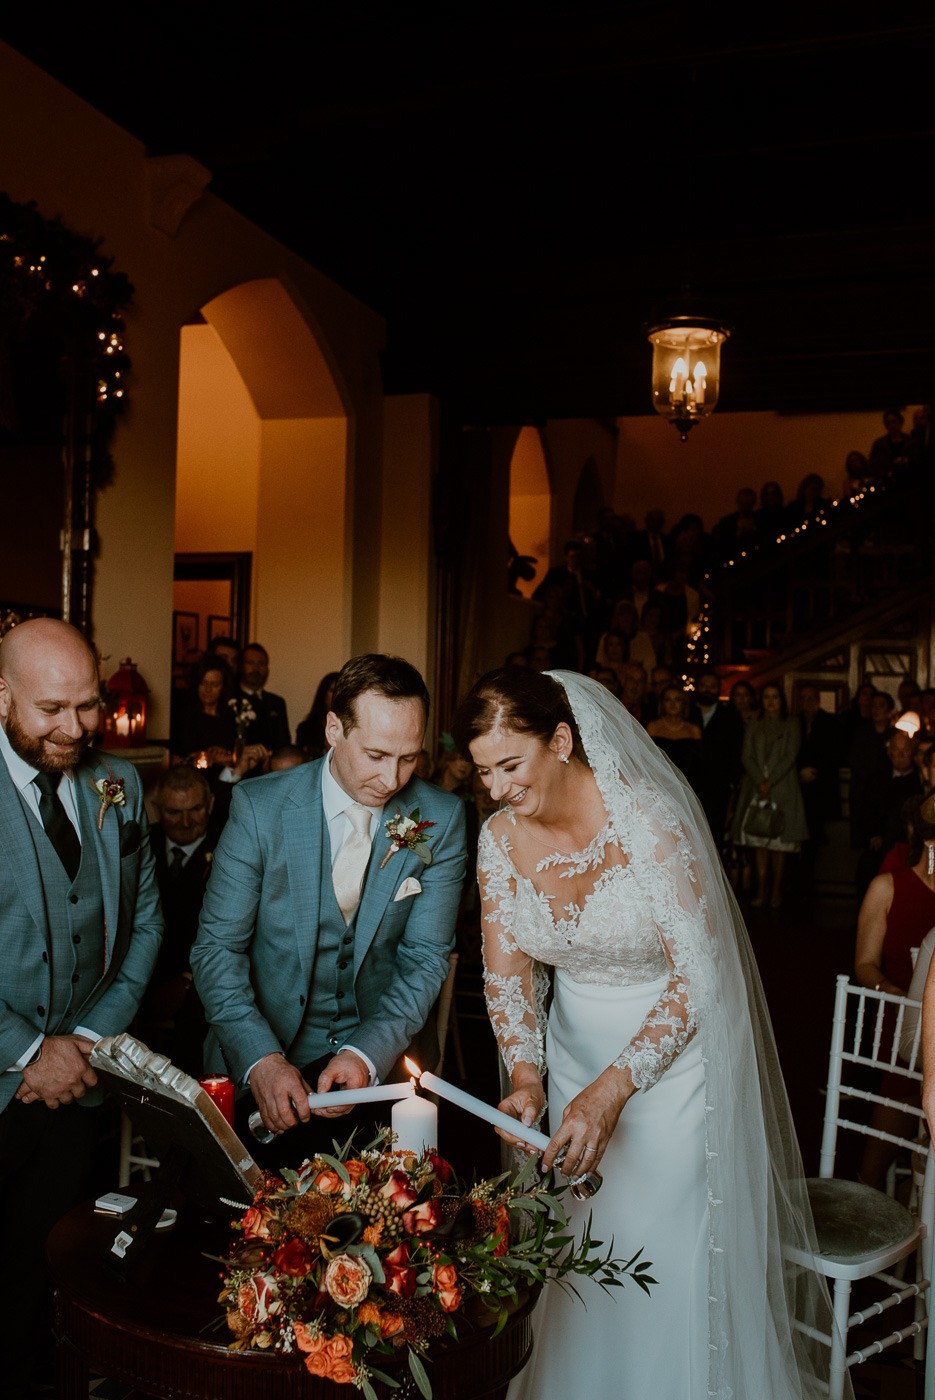 A man and woman cutting a wedding cake